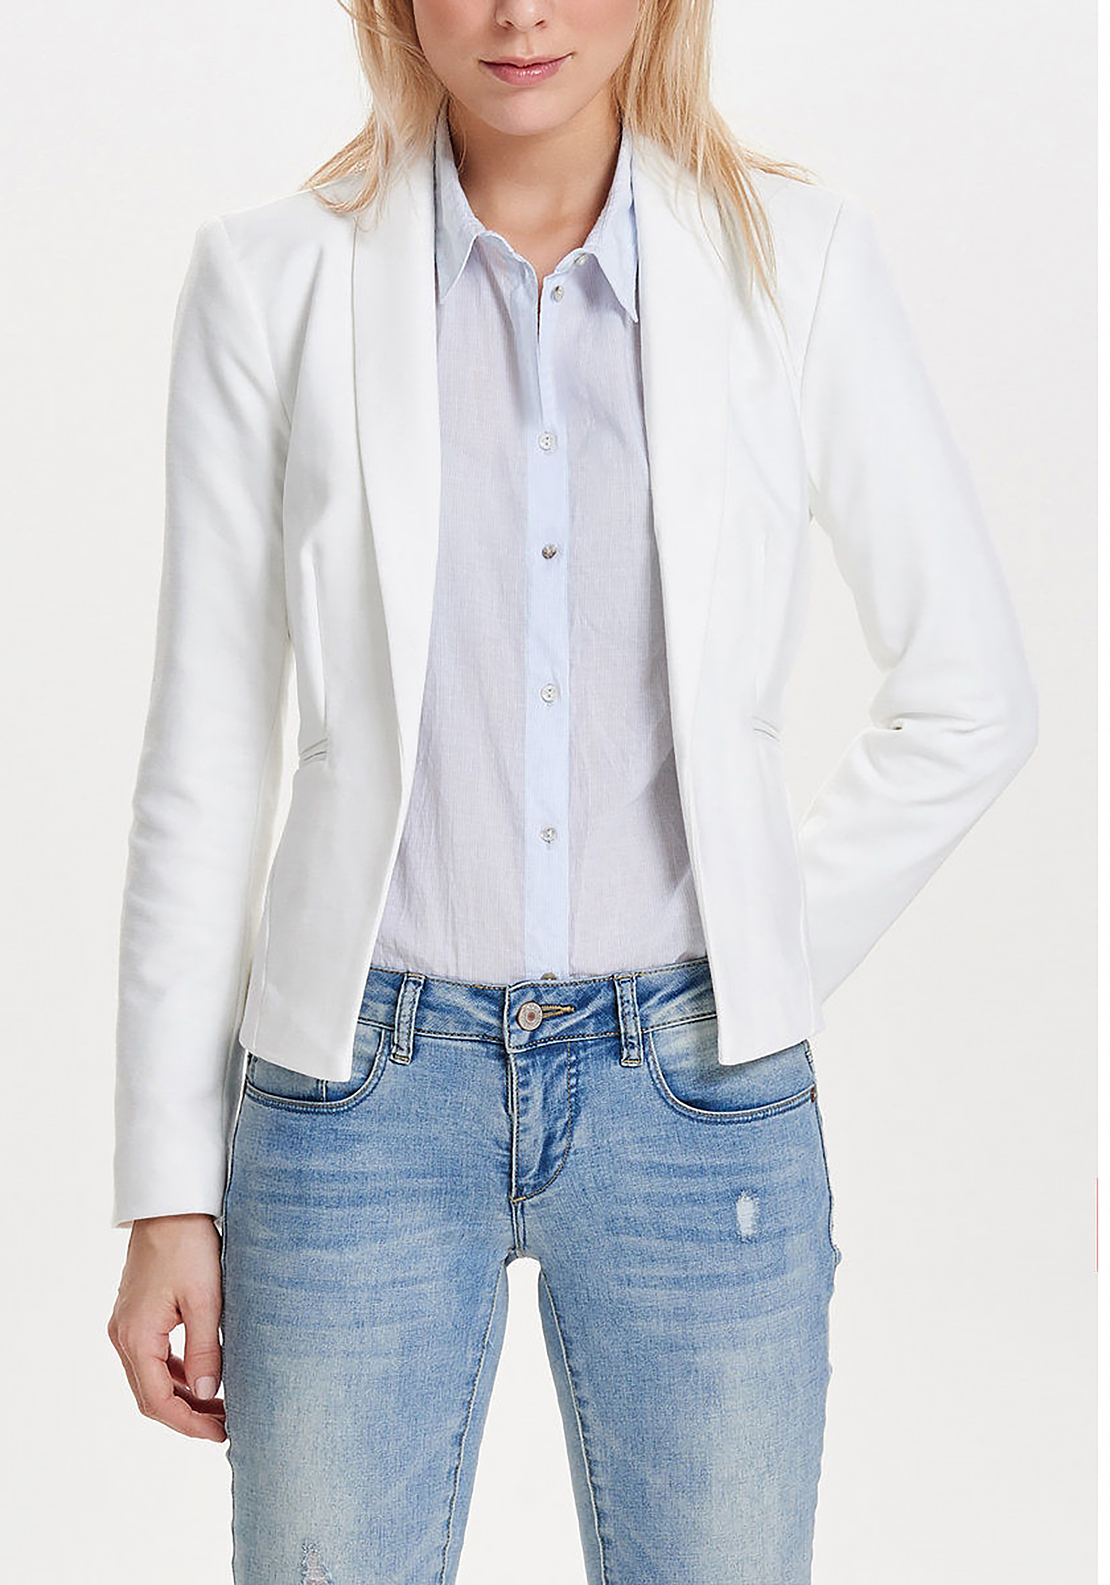 Only Arial Jersey Short Blazer Jacket, White